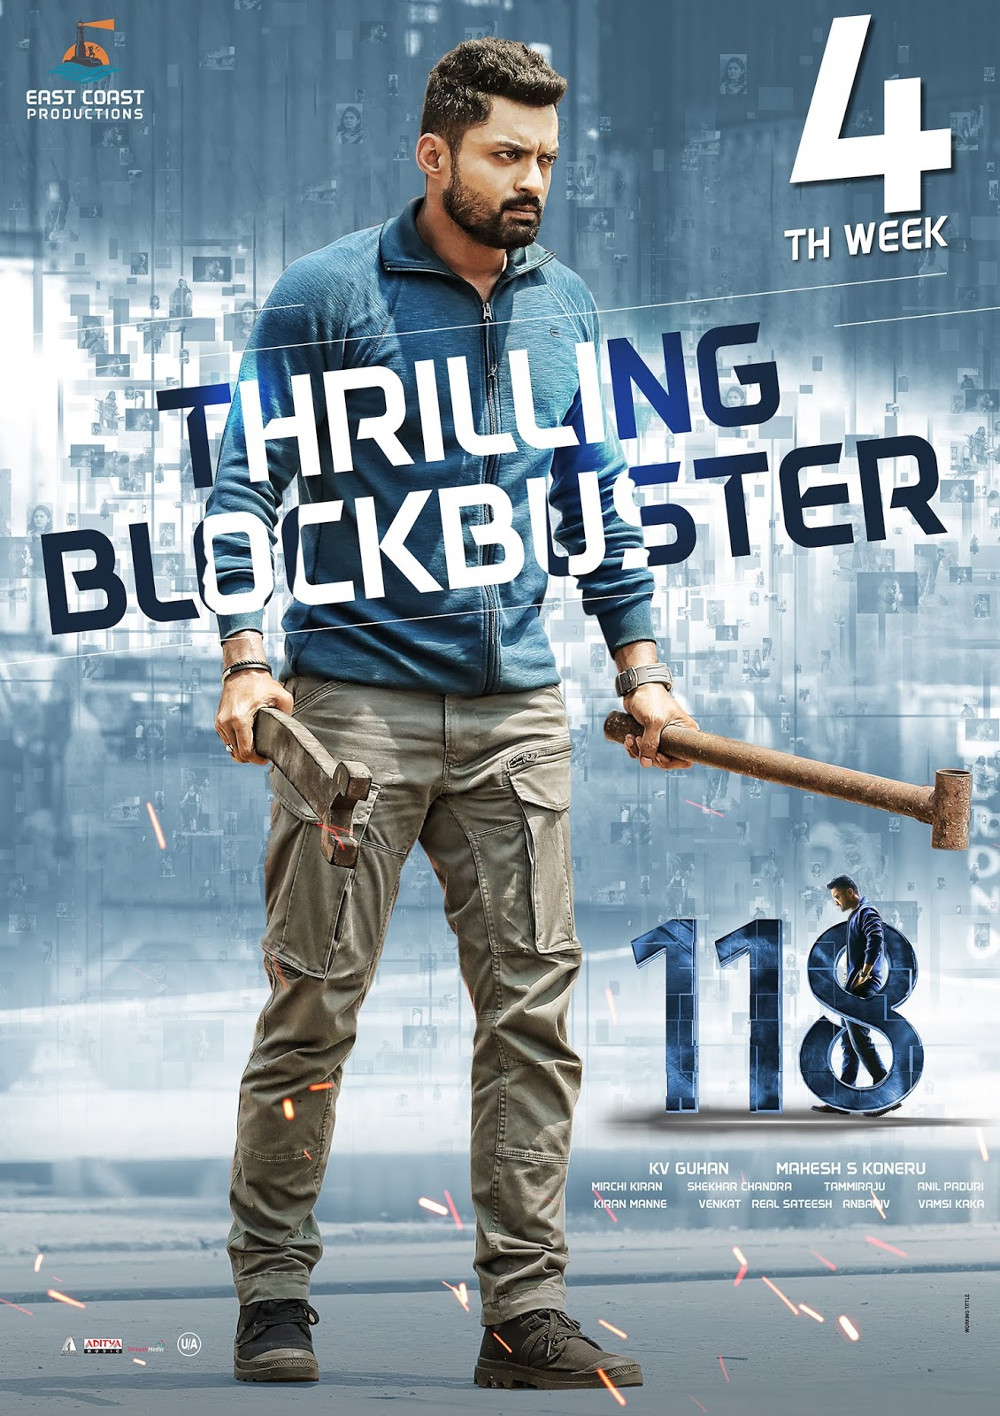 Nandamuri Kalyan Ram 118 Movie 4th Week Posters